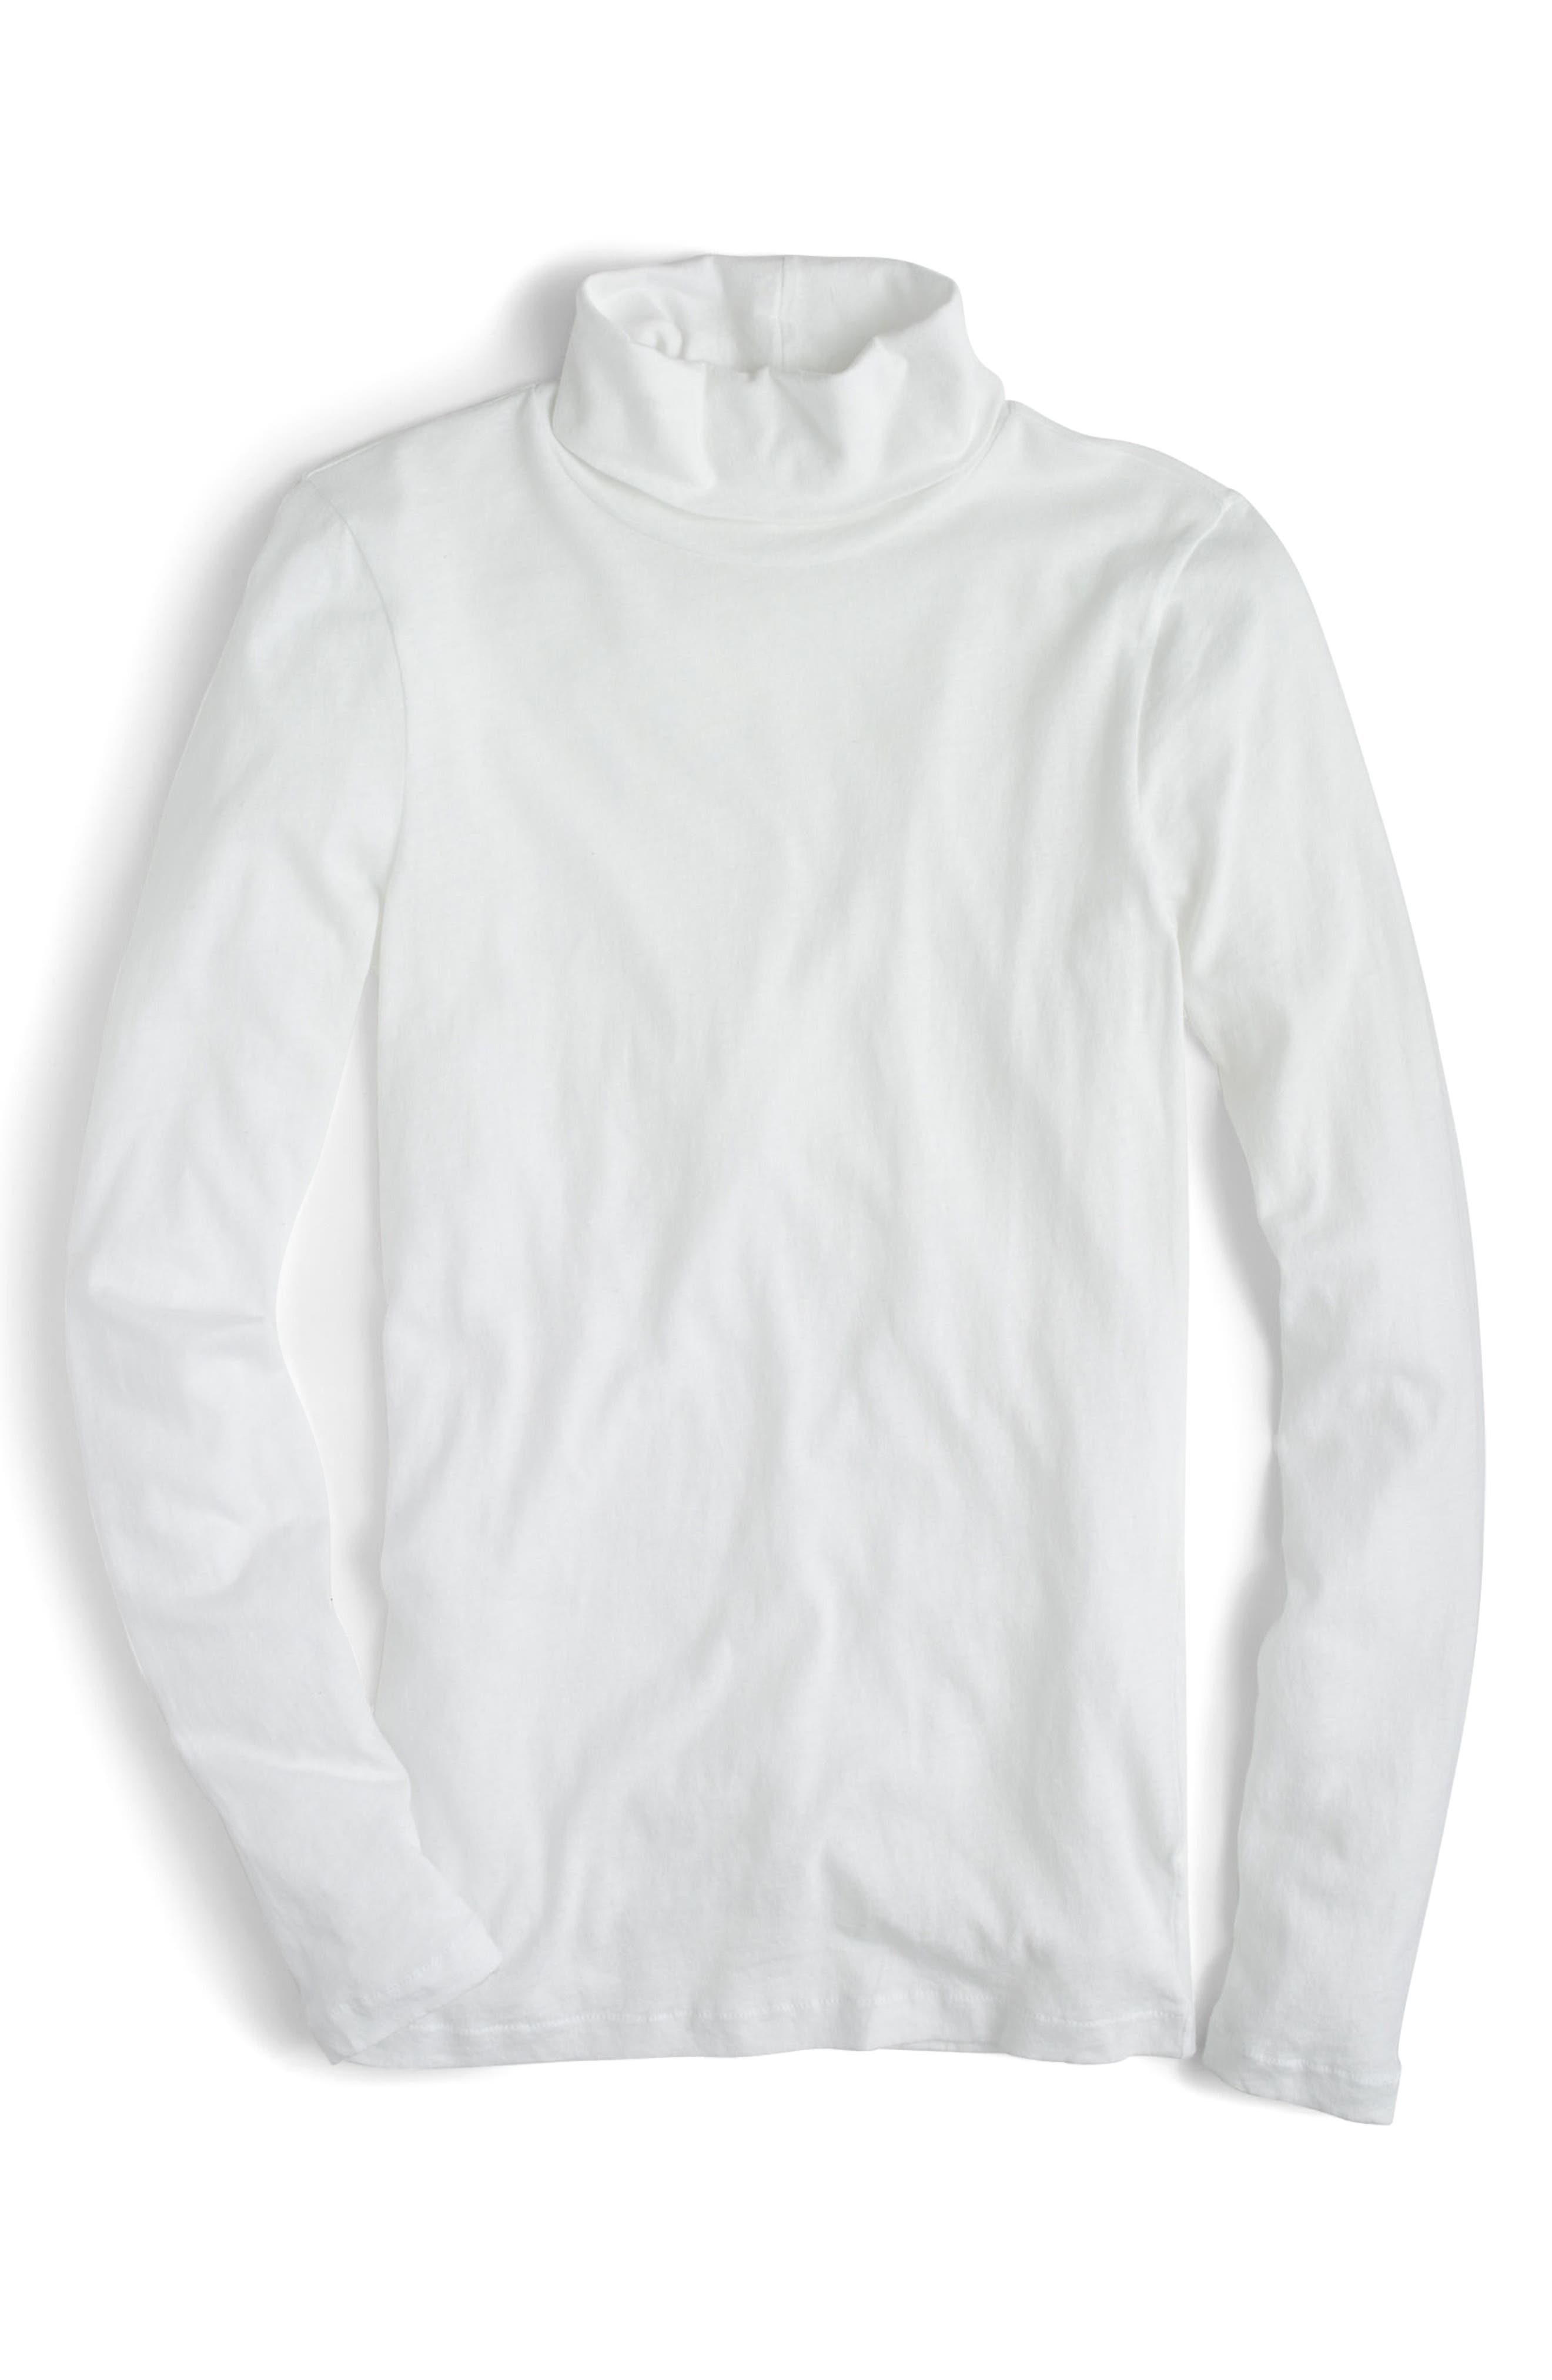 J.Crew Tissue Turtleneck Tee